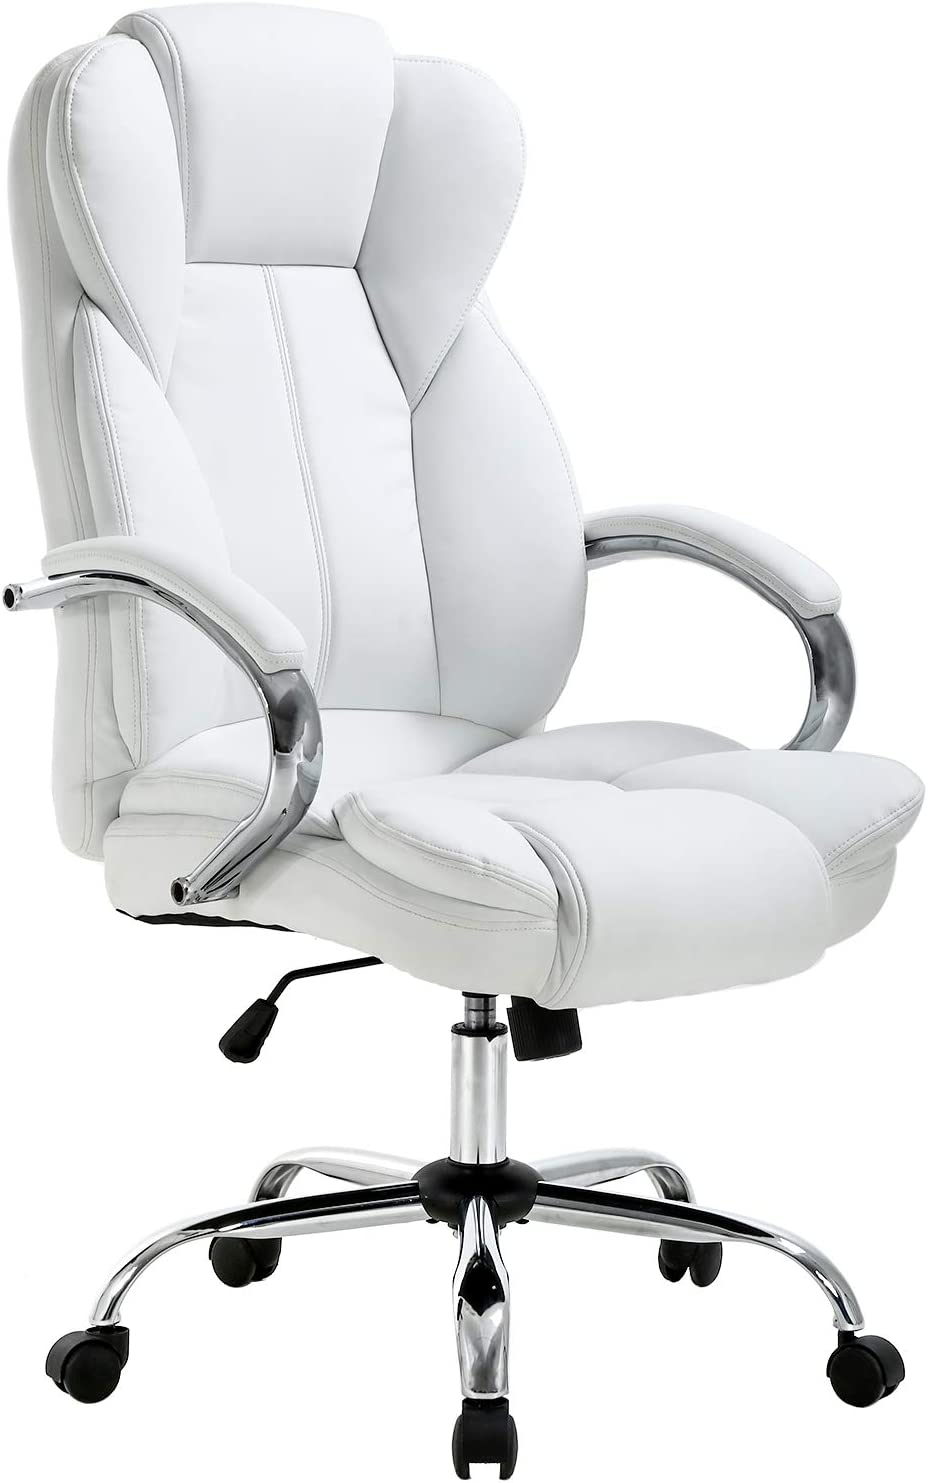 Ergonomic Office Chair Desk, White Leather Computer Chairs